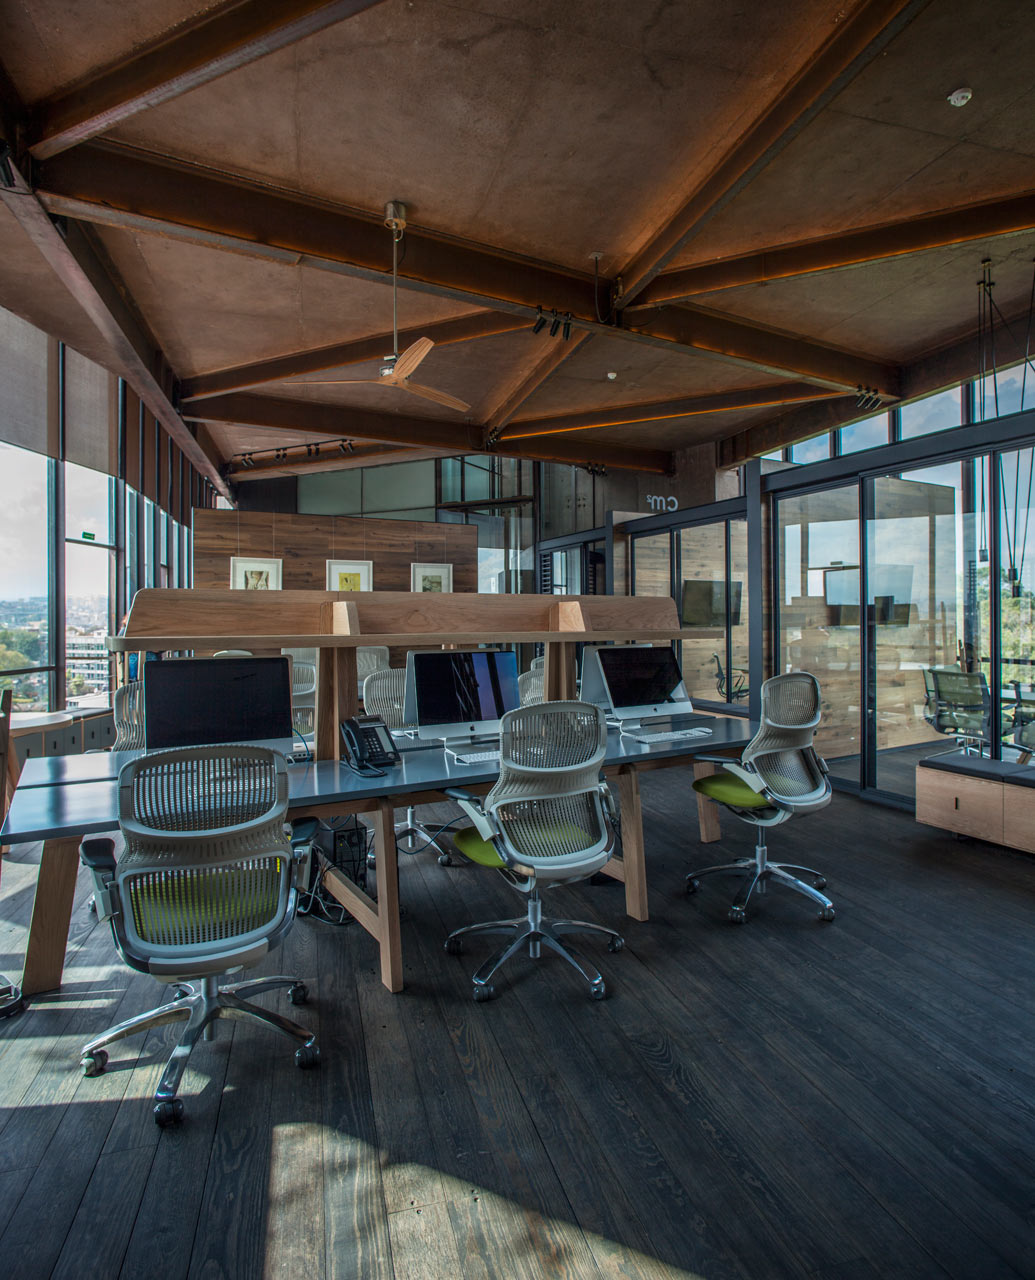 An Irregularly Shaped Office That Sits Above the Treetops